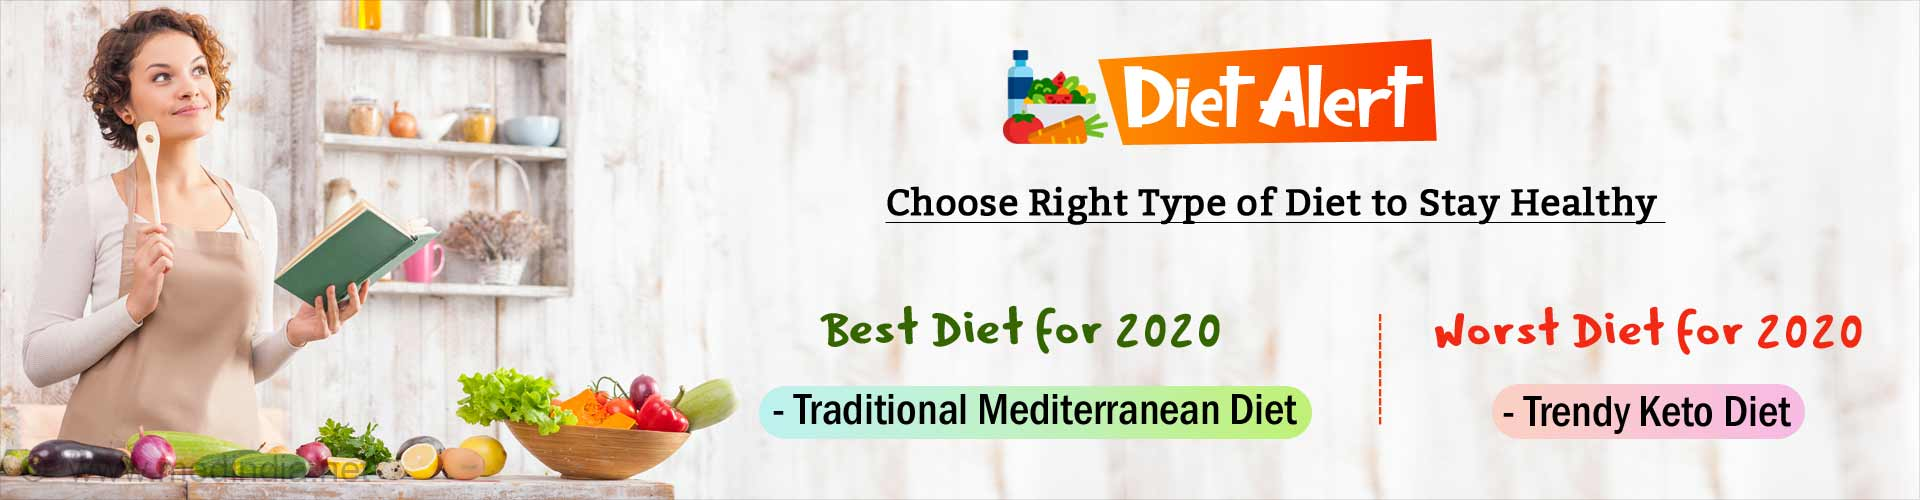 Mediterranean Diet: The Best Diet for New Year 2020